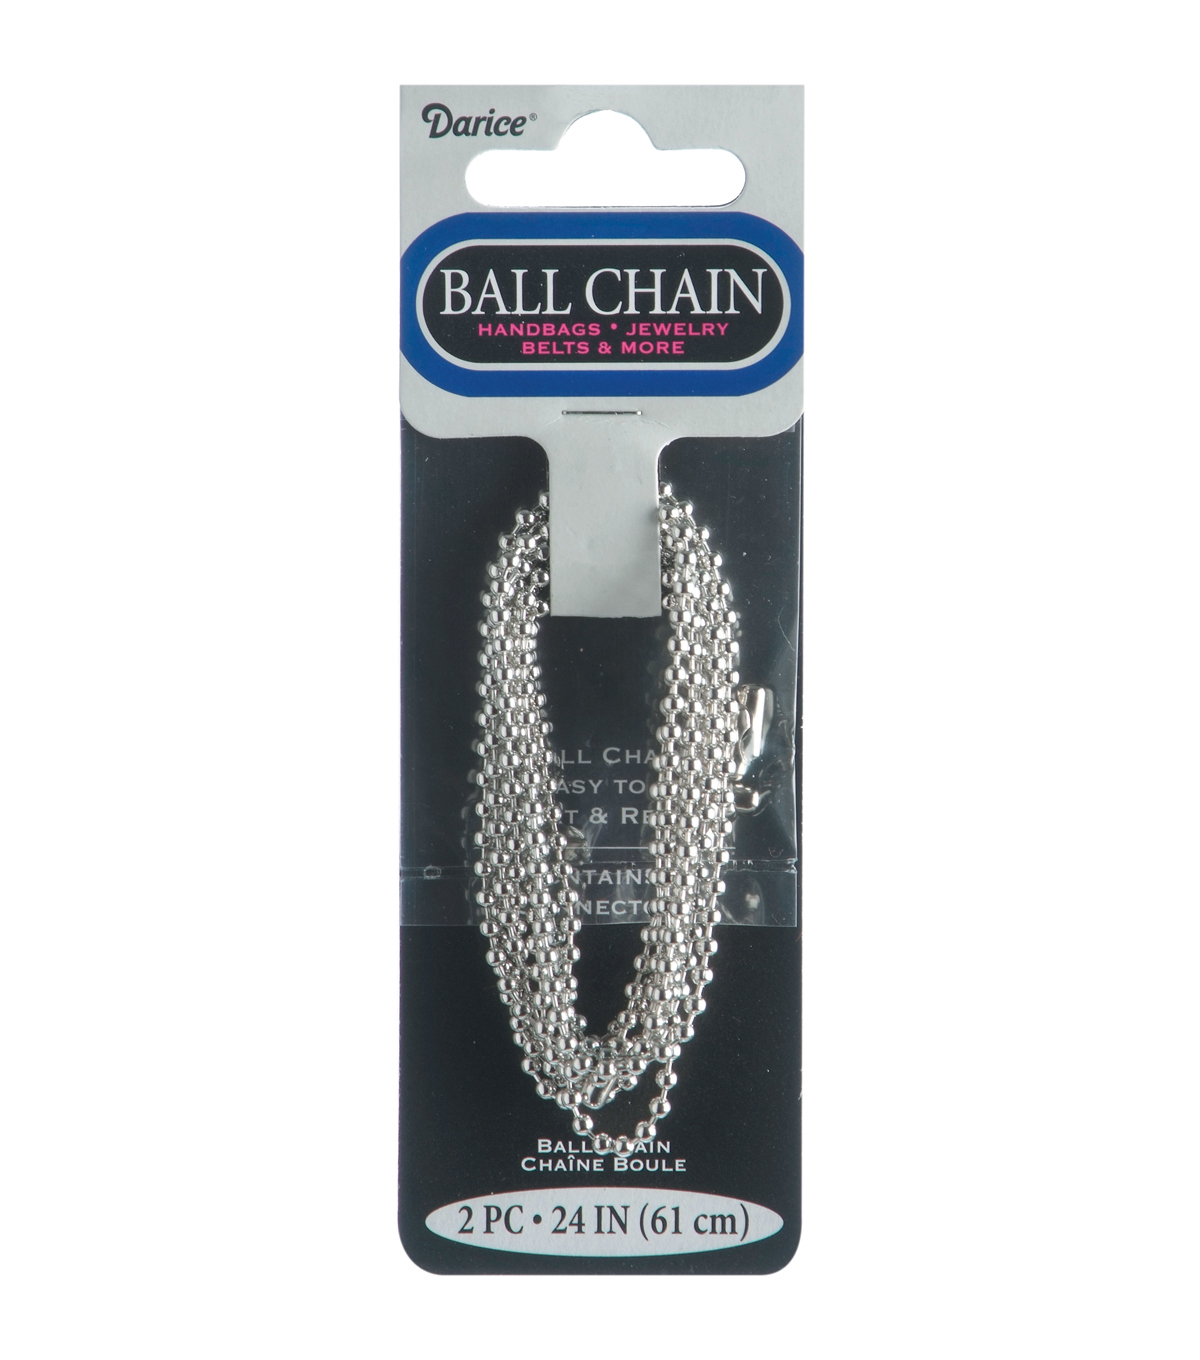 Ball Chain Metal Plated Chain 2.4mm 24\u0022 2/pkg-Silver/Ball